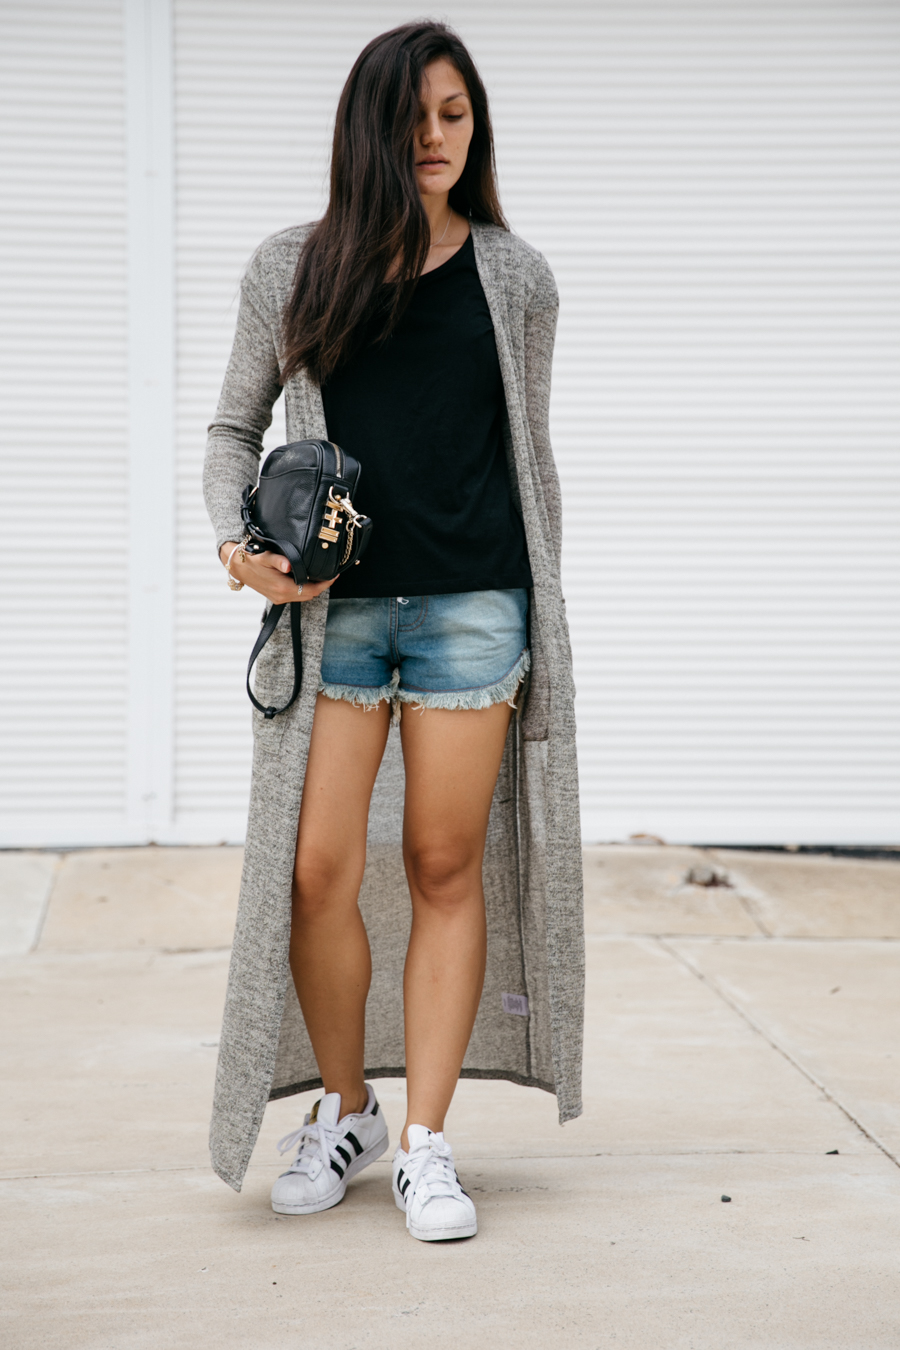 Long cardigan worn with denim cut offs & sneakers.